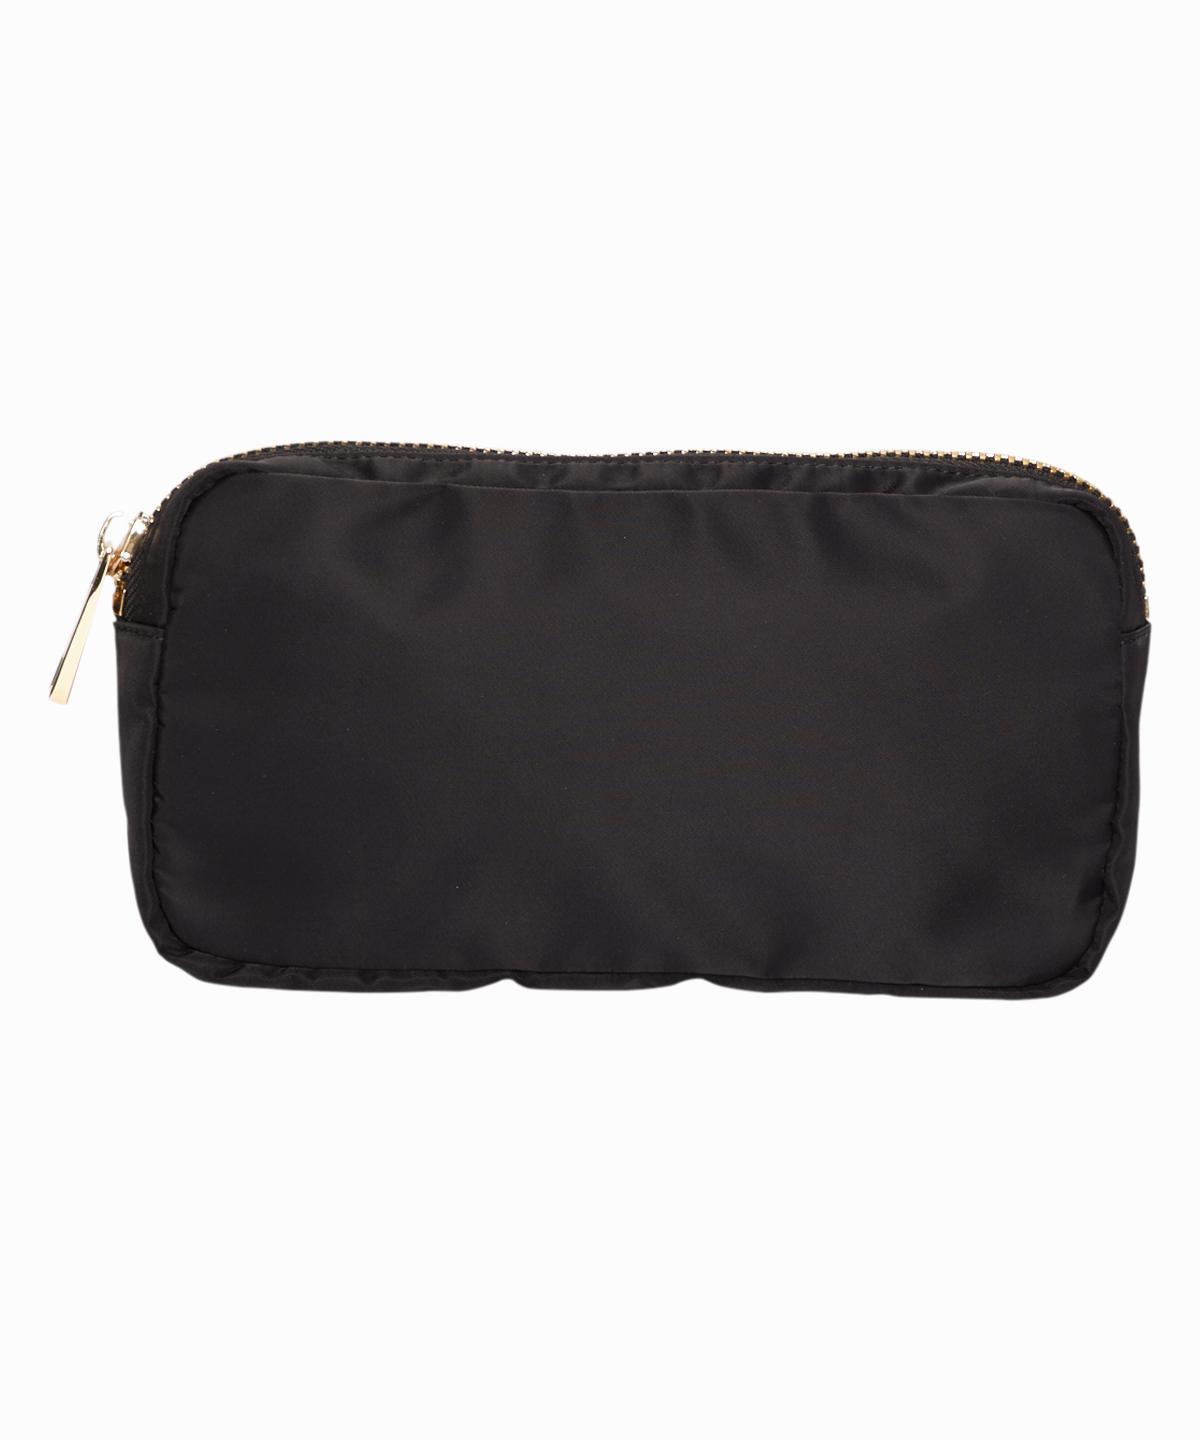 Exclusive Black Small Zipper Pouch